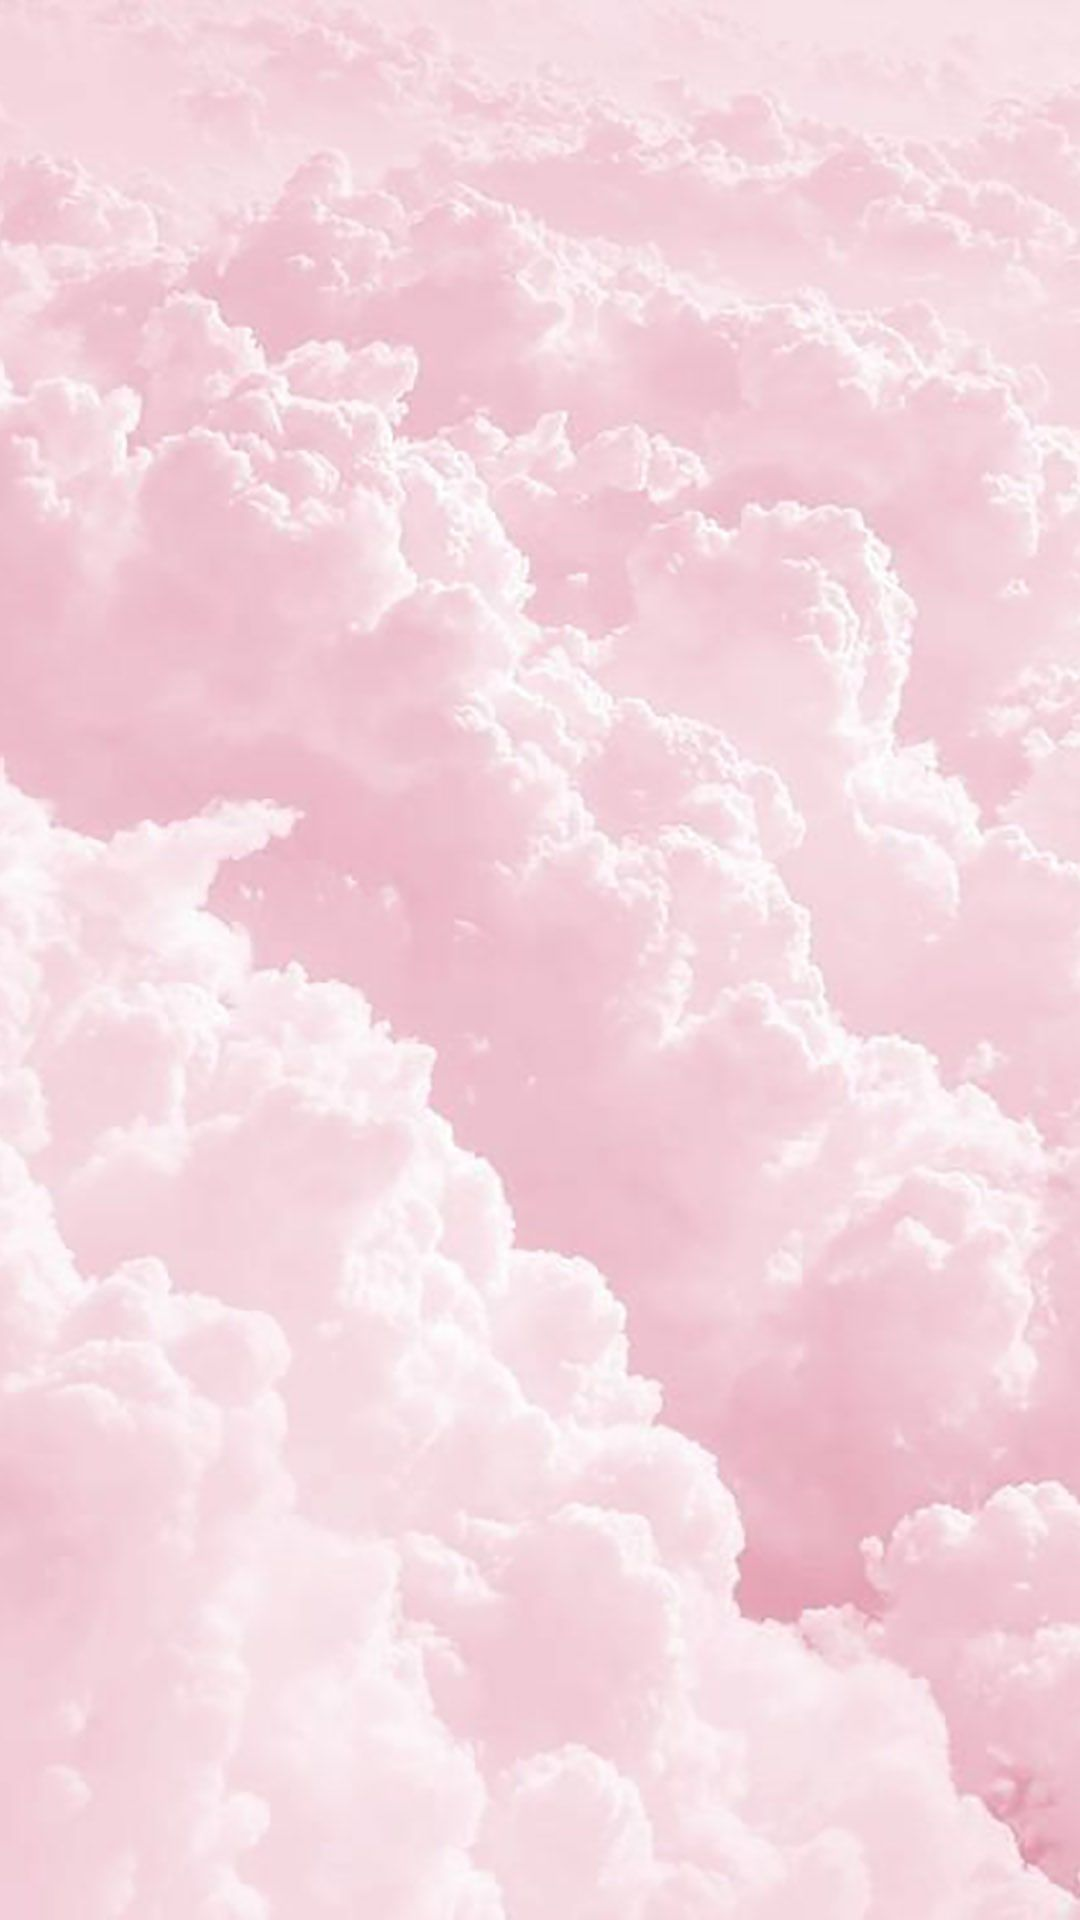 Get New Cloud Wallpaper for Android Phone 2020